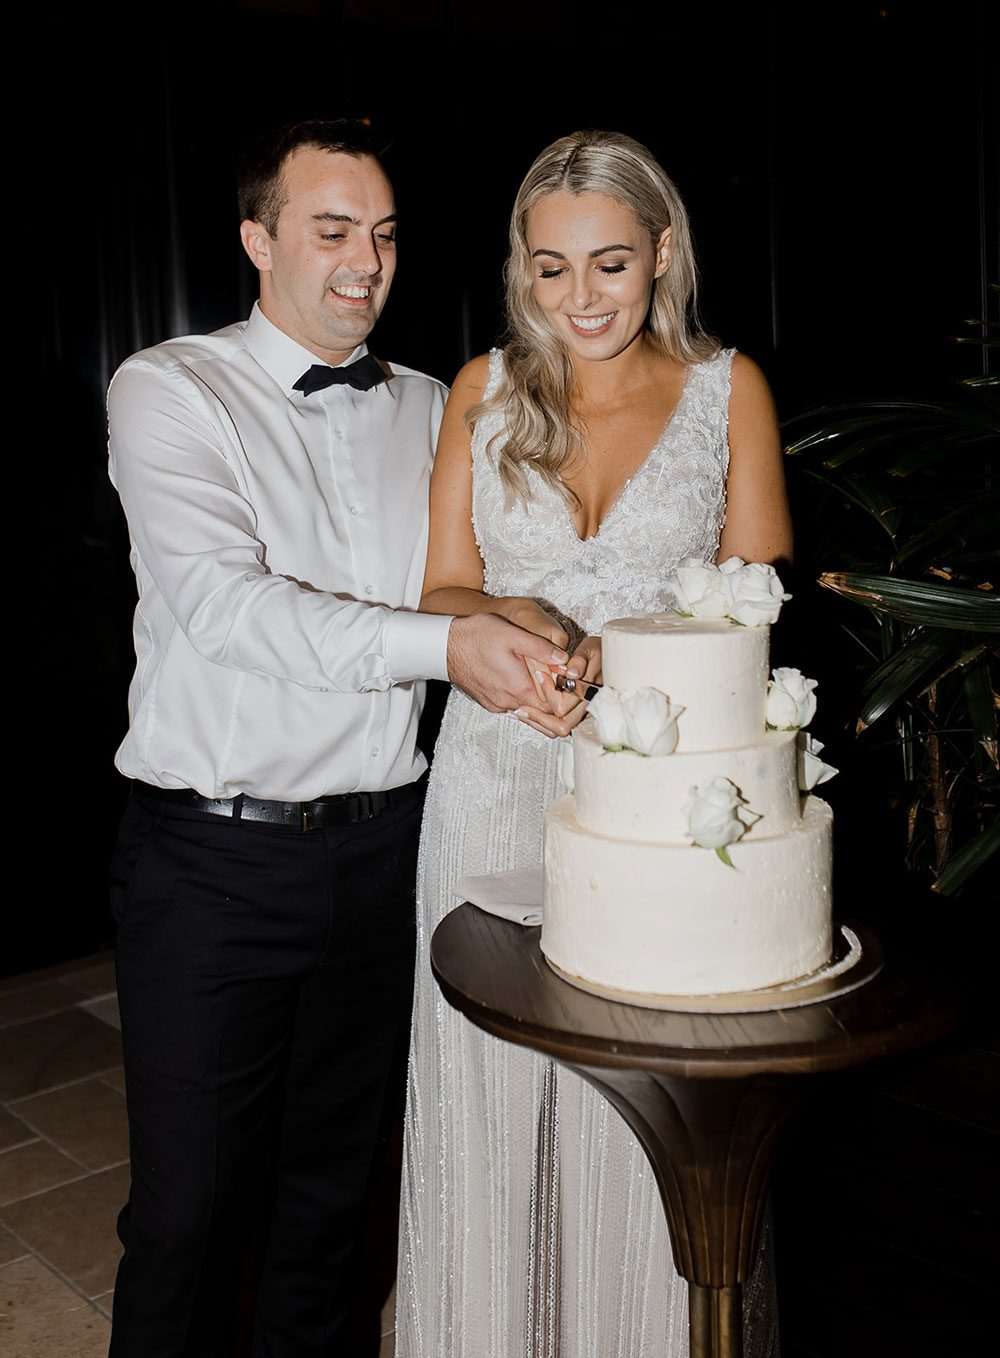 Bride wearing bespoke fitted V-neck gown in beaded lace with front split and sheer beaded overlay by Vinka bridal boutique NZ- cutting cake